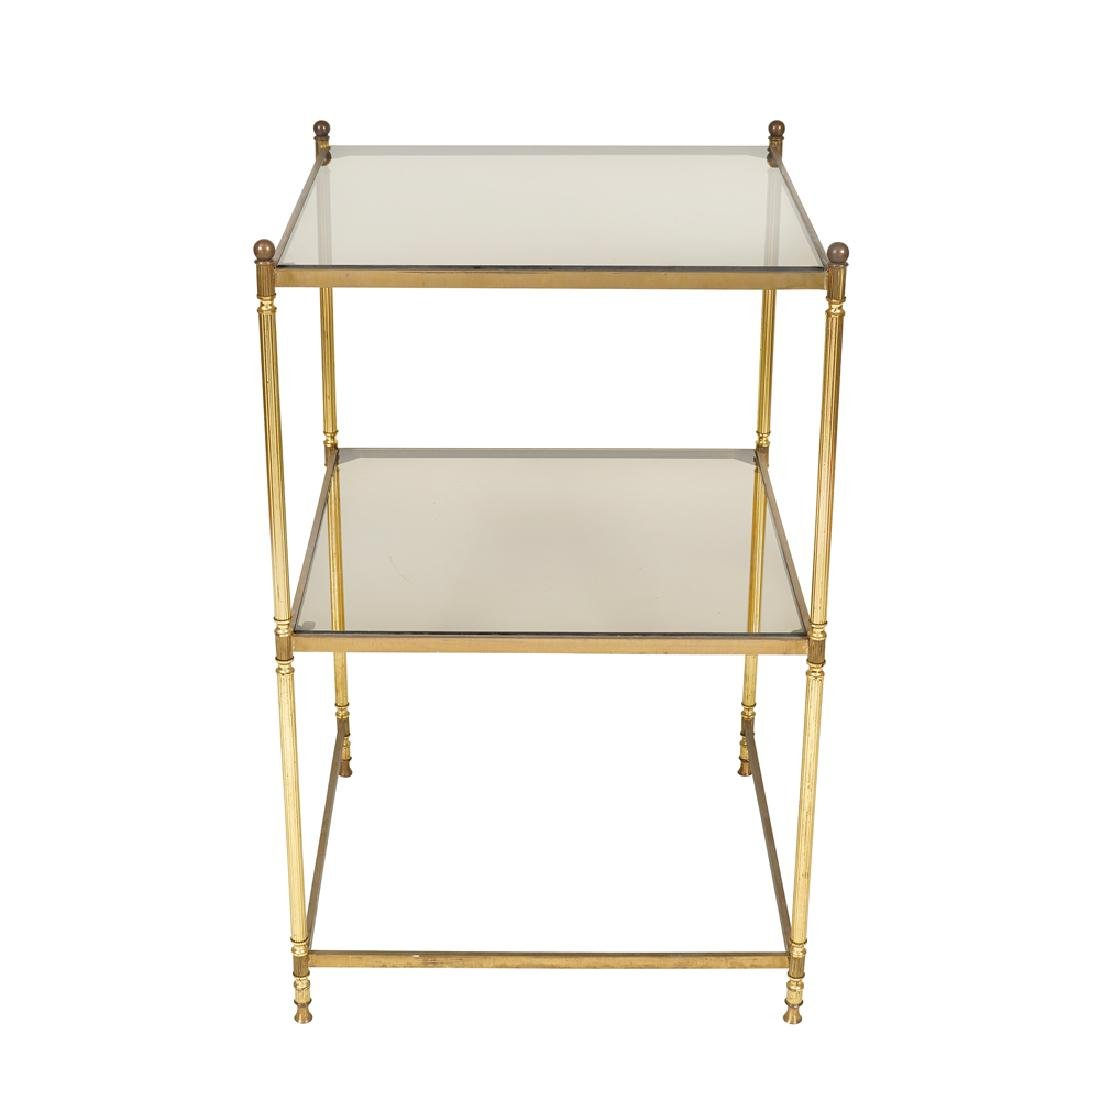 Etagere furniture France 20th century 82x52x52 cm.